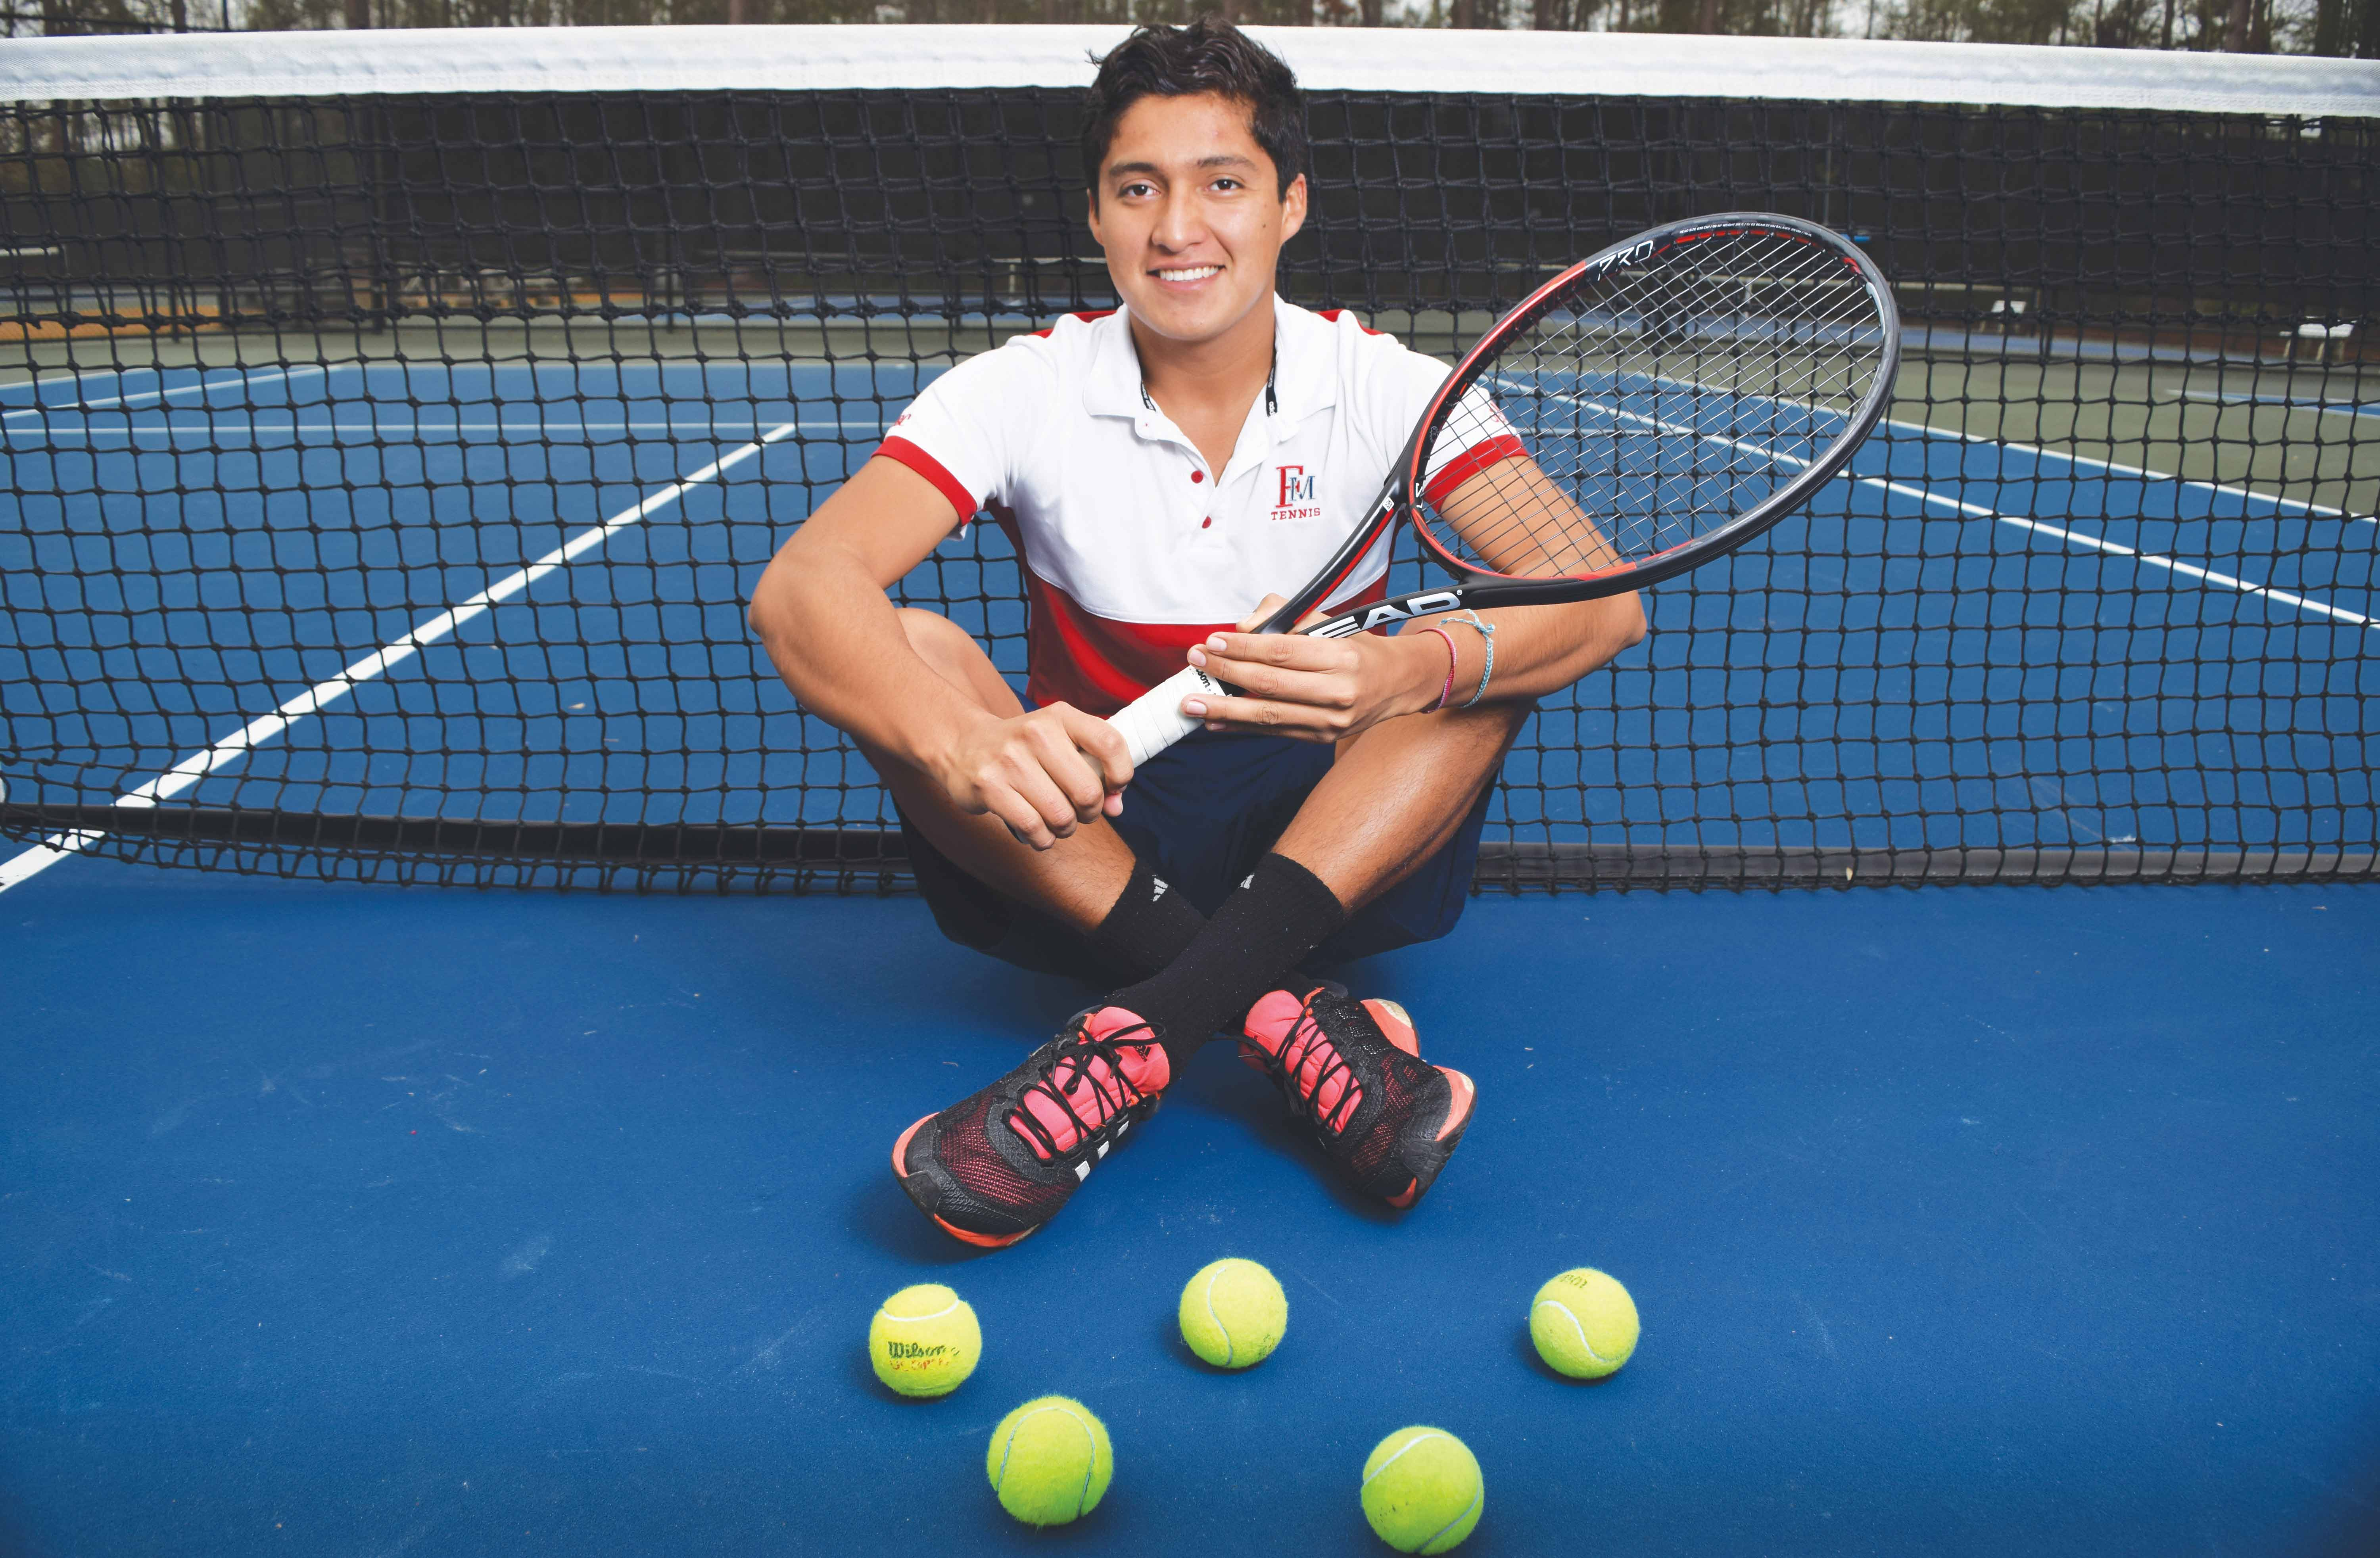 Tennis Player Mauricio Guerrero always wears a bracelet to motivate him to give 100 percent in everything he does, including playing tennis, practicing music and learning a new language.